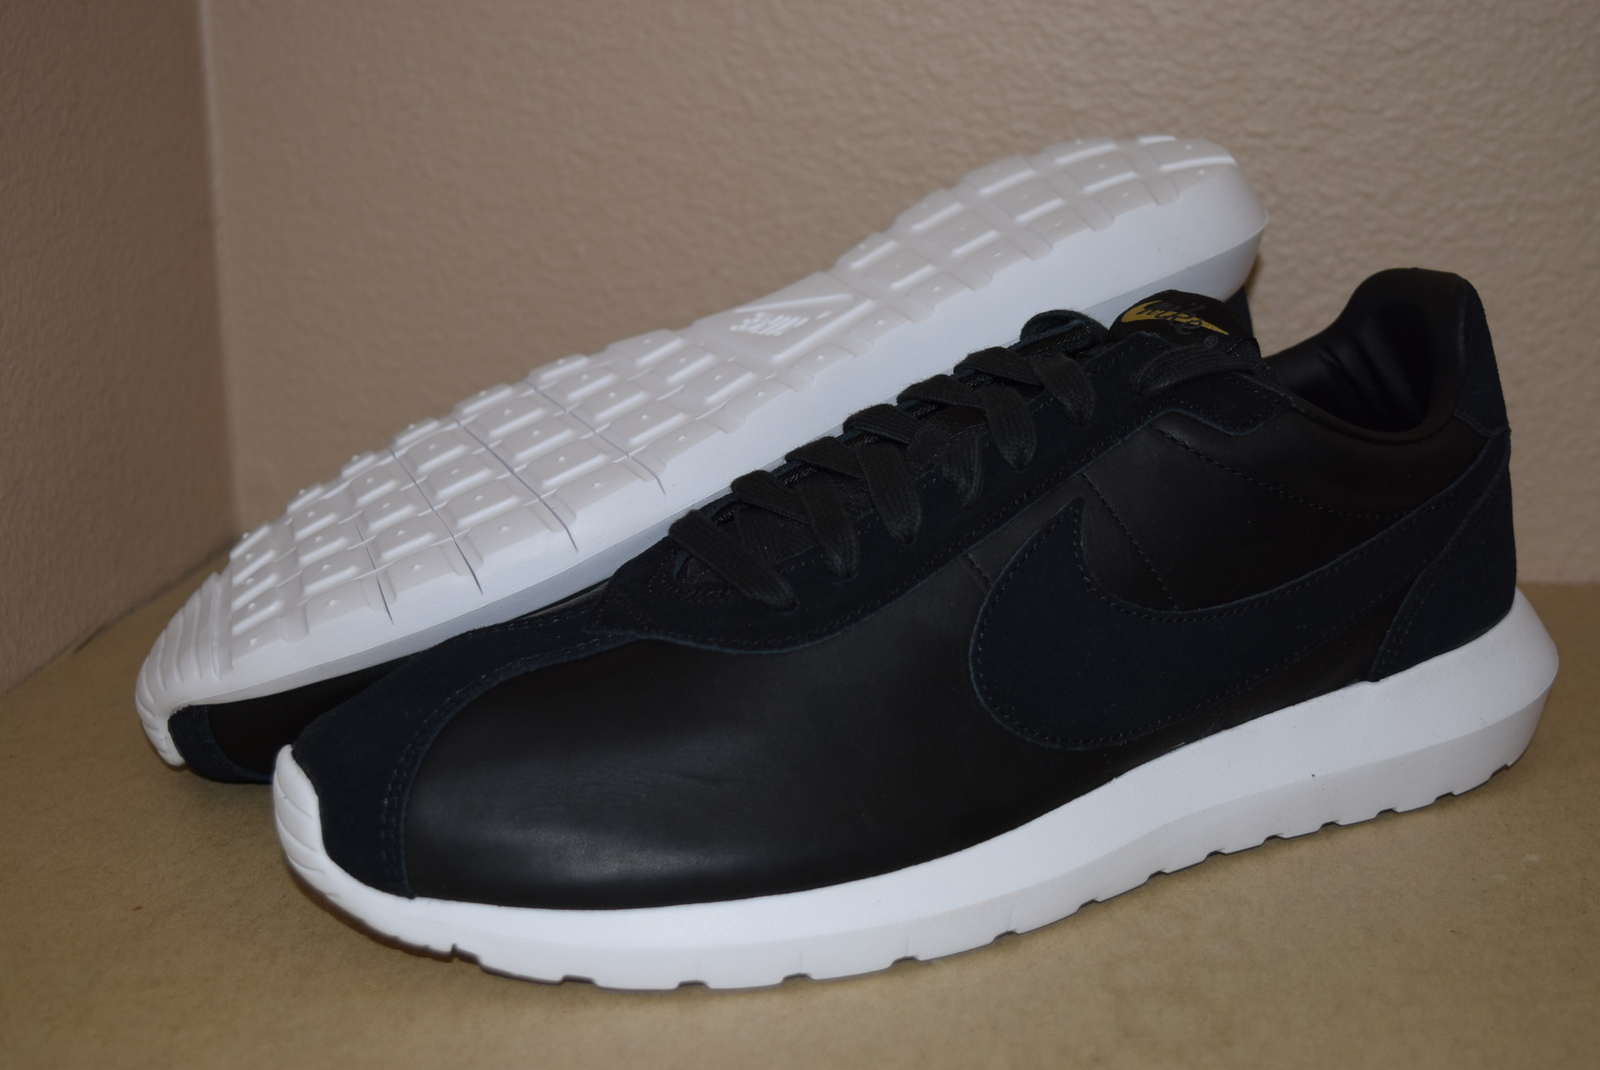 new style 75404 35c95 ... Nike Roshe LD-1000 and 50 similar items. Dsc 0353